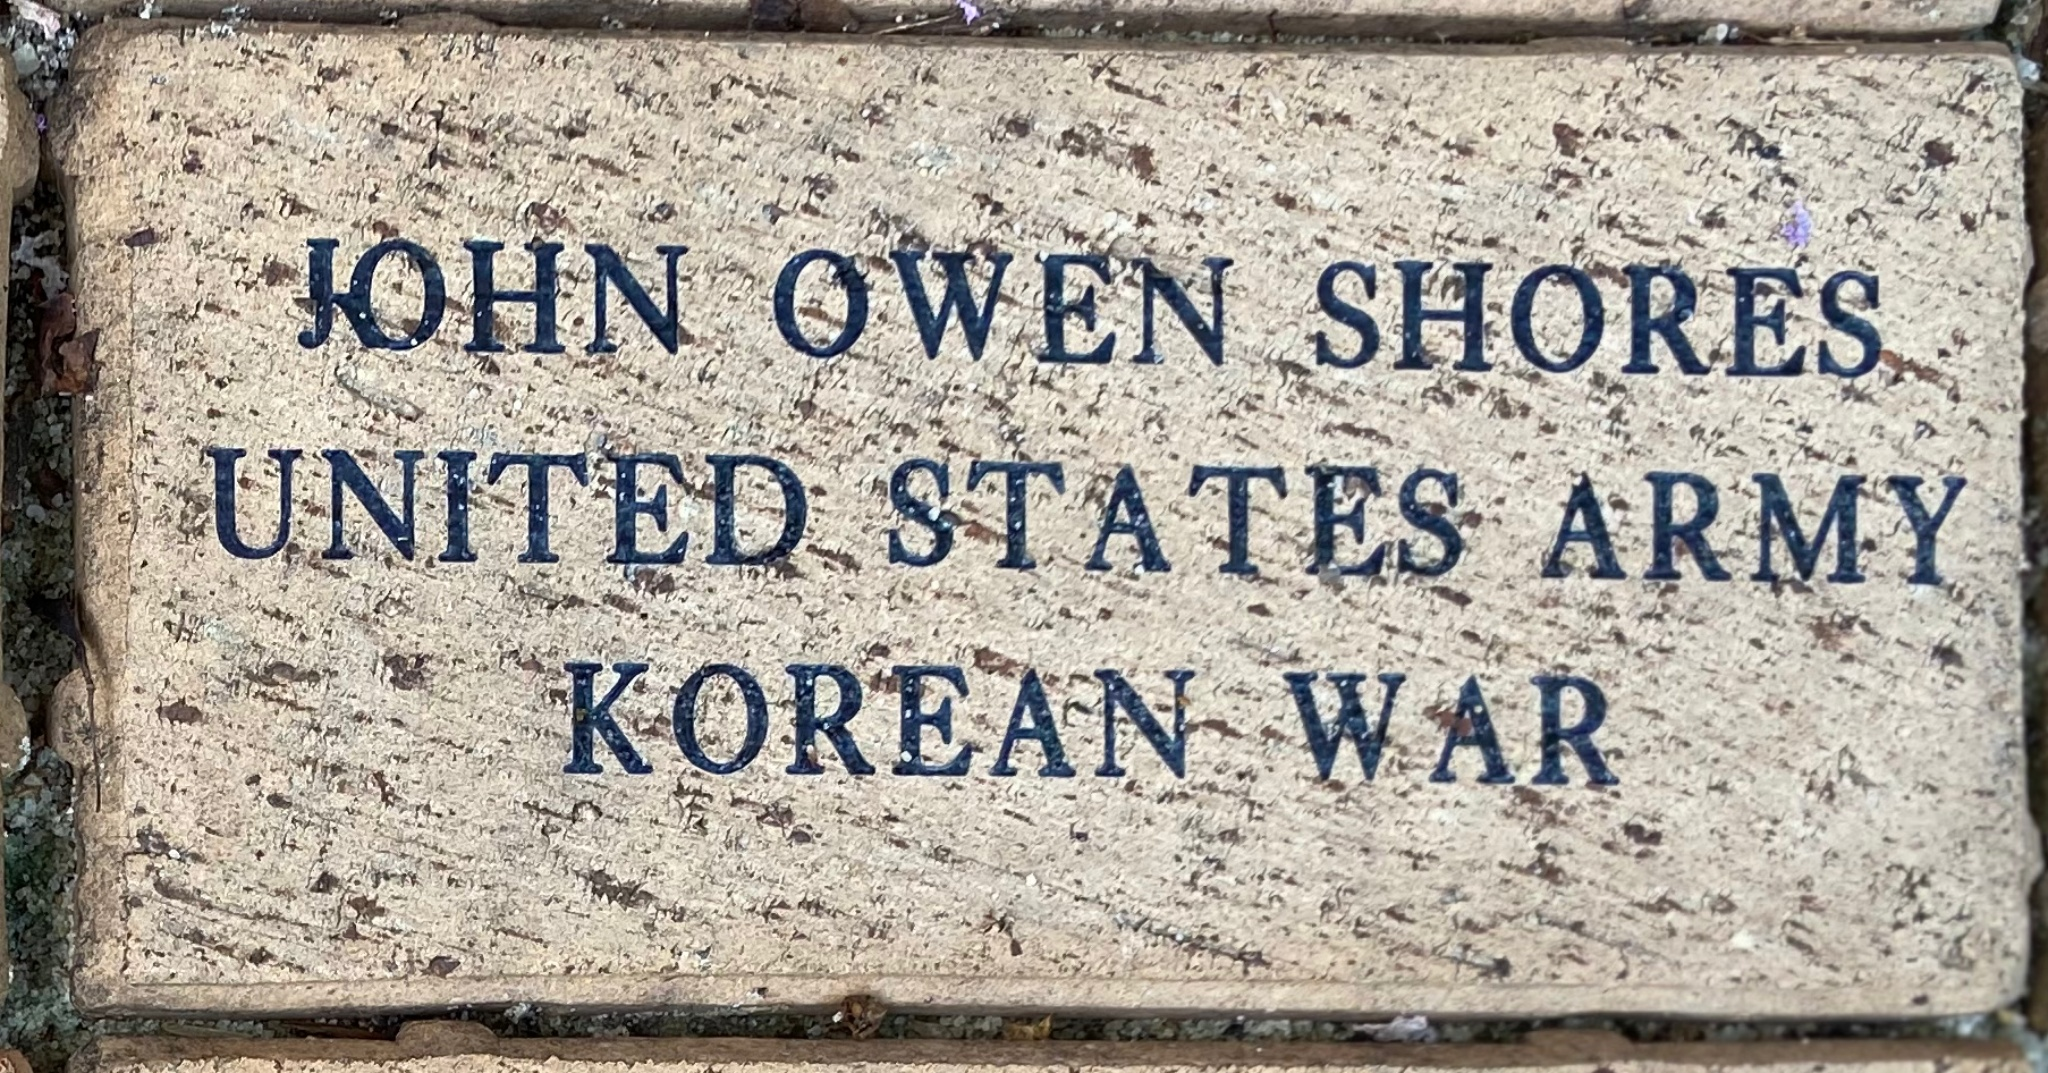 JOHN OWEN SHORES UNITED STATES ARMY KOREAN WAR